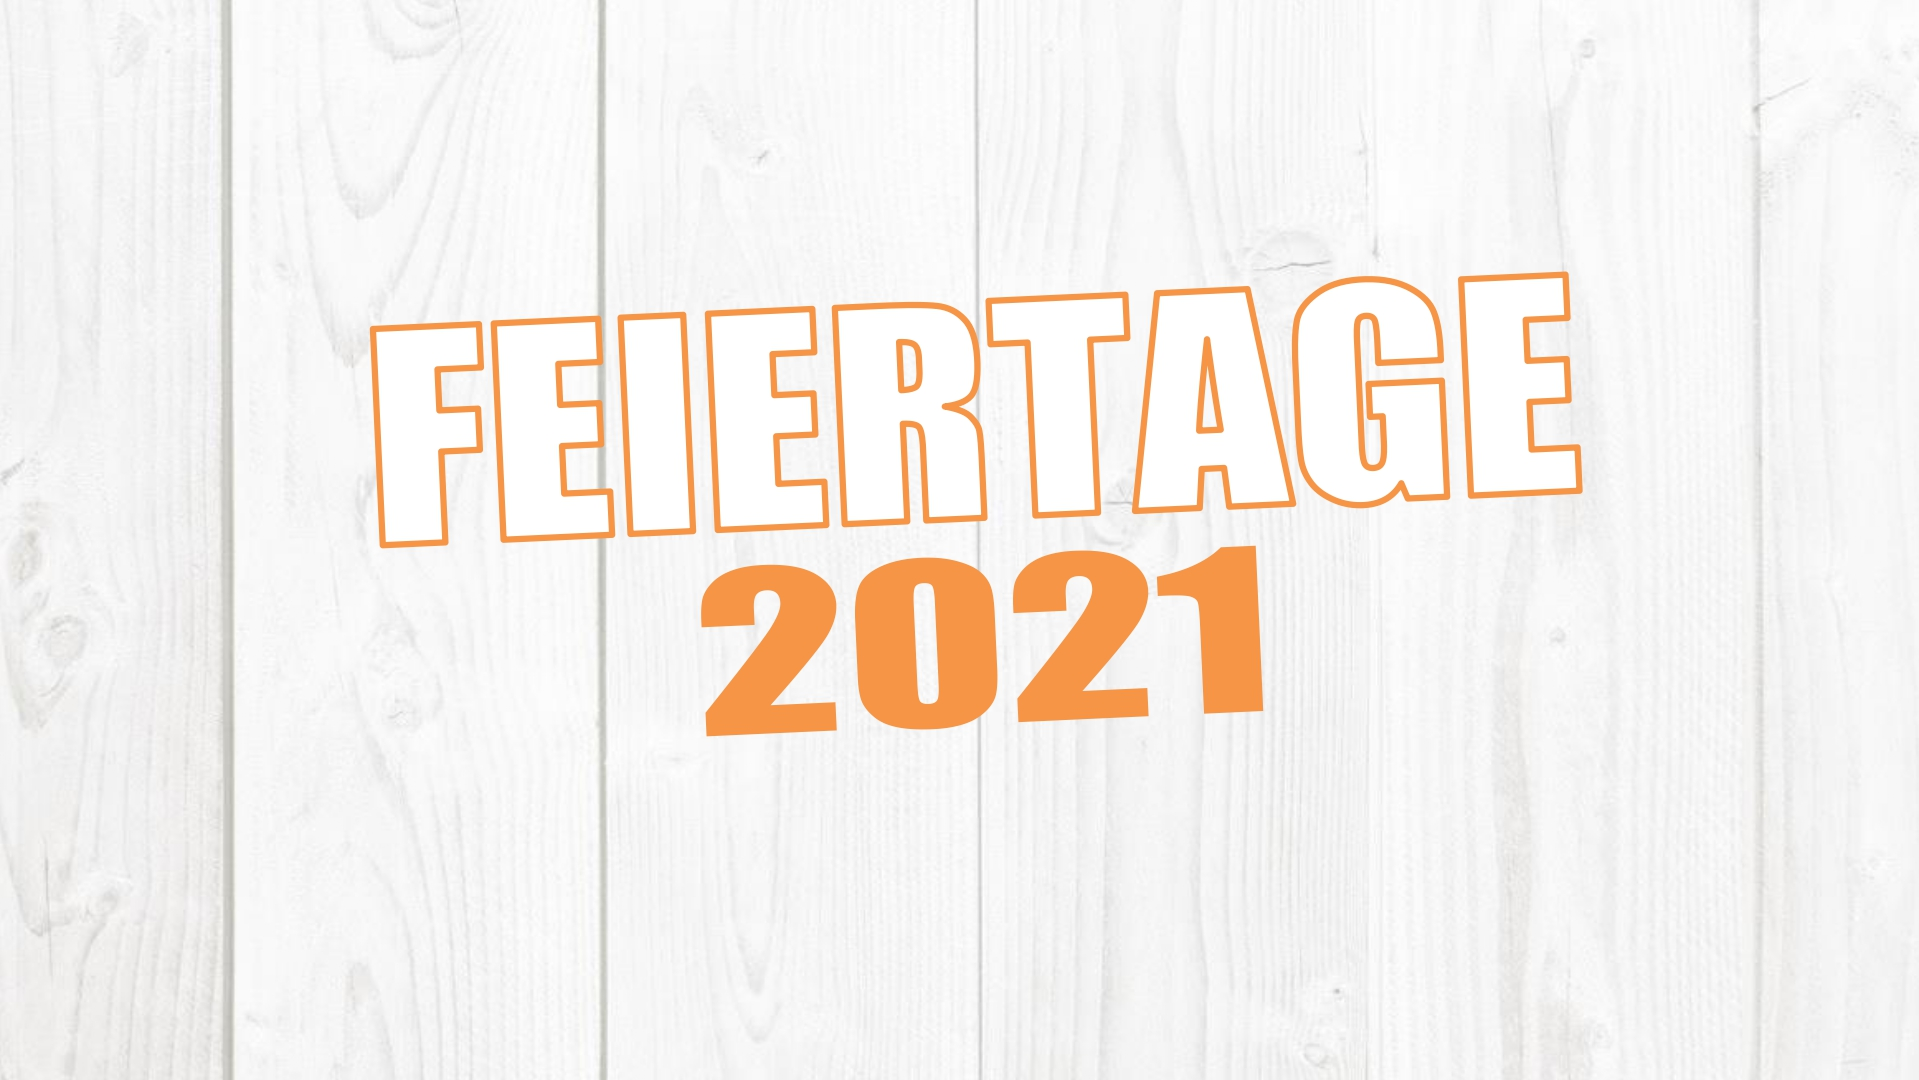 Feiertage 2021_page-0001